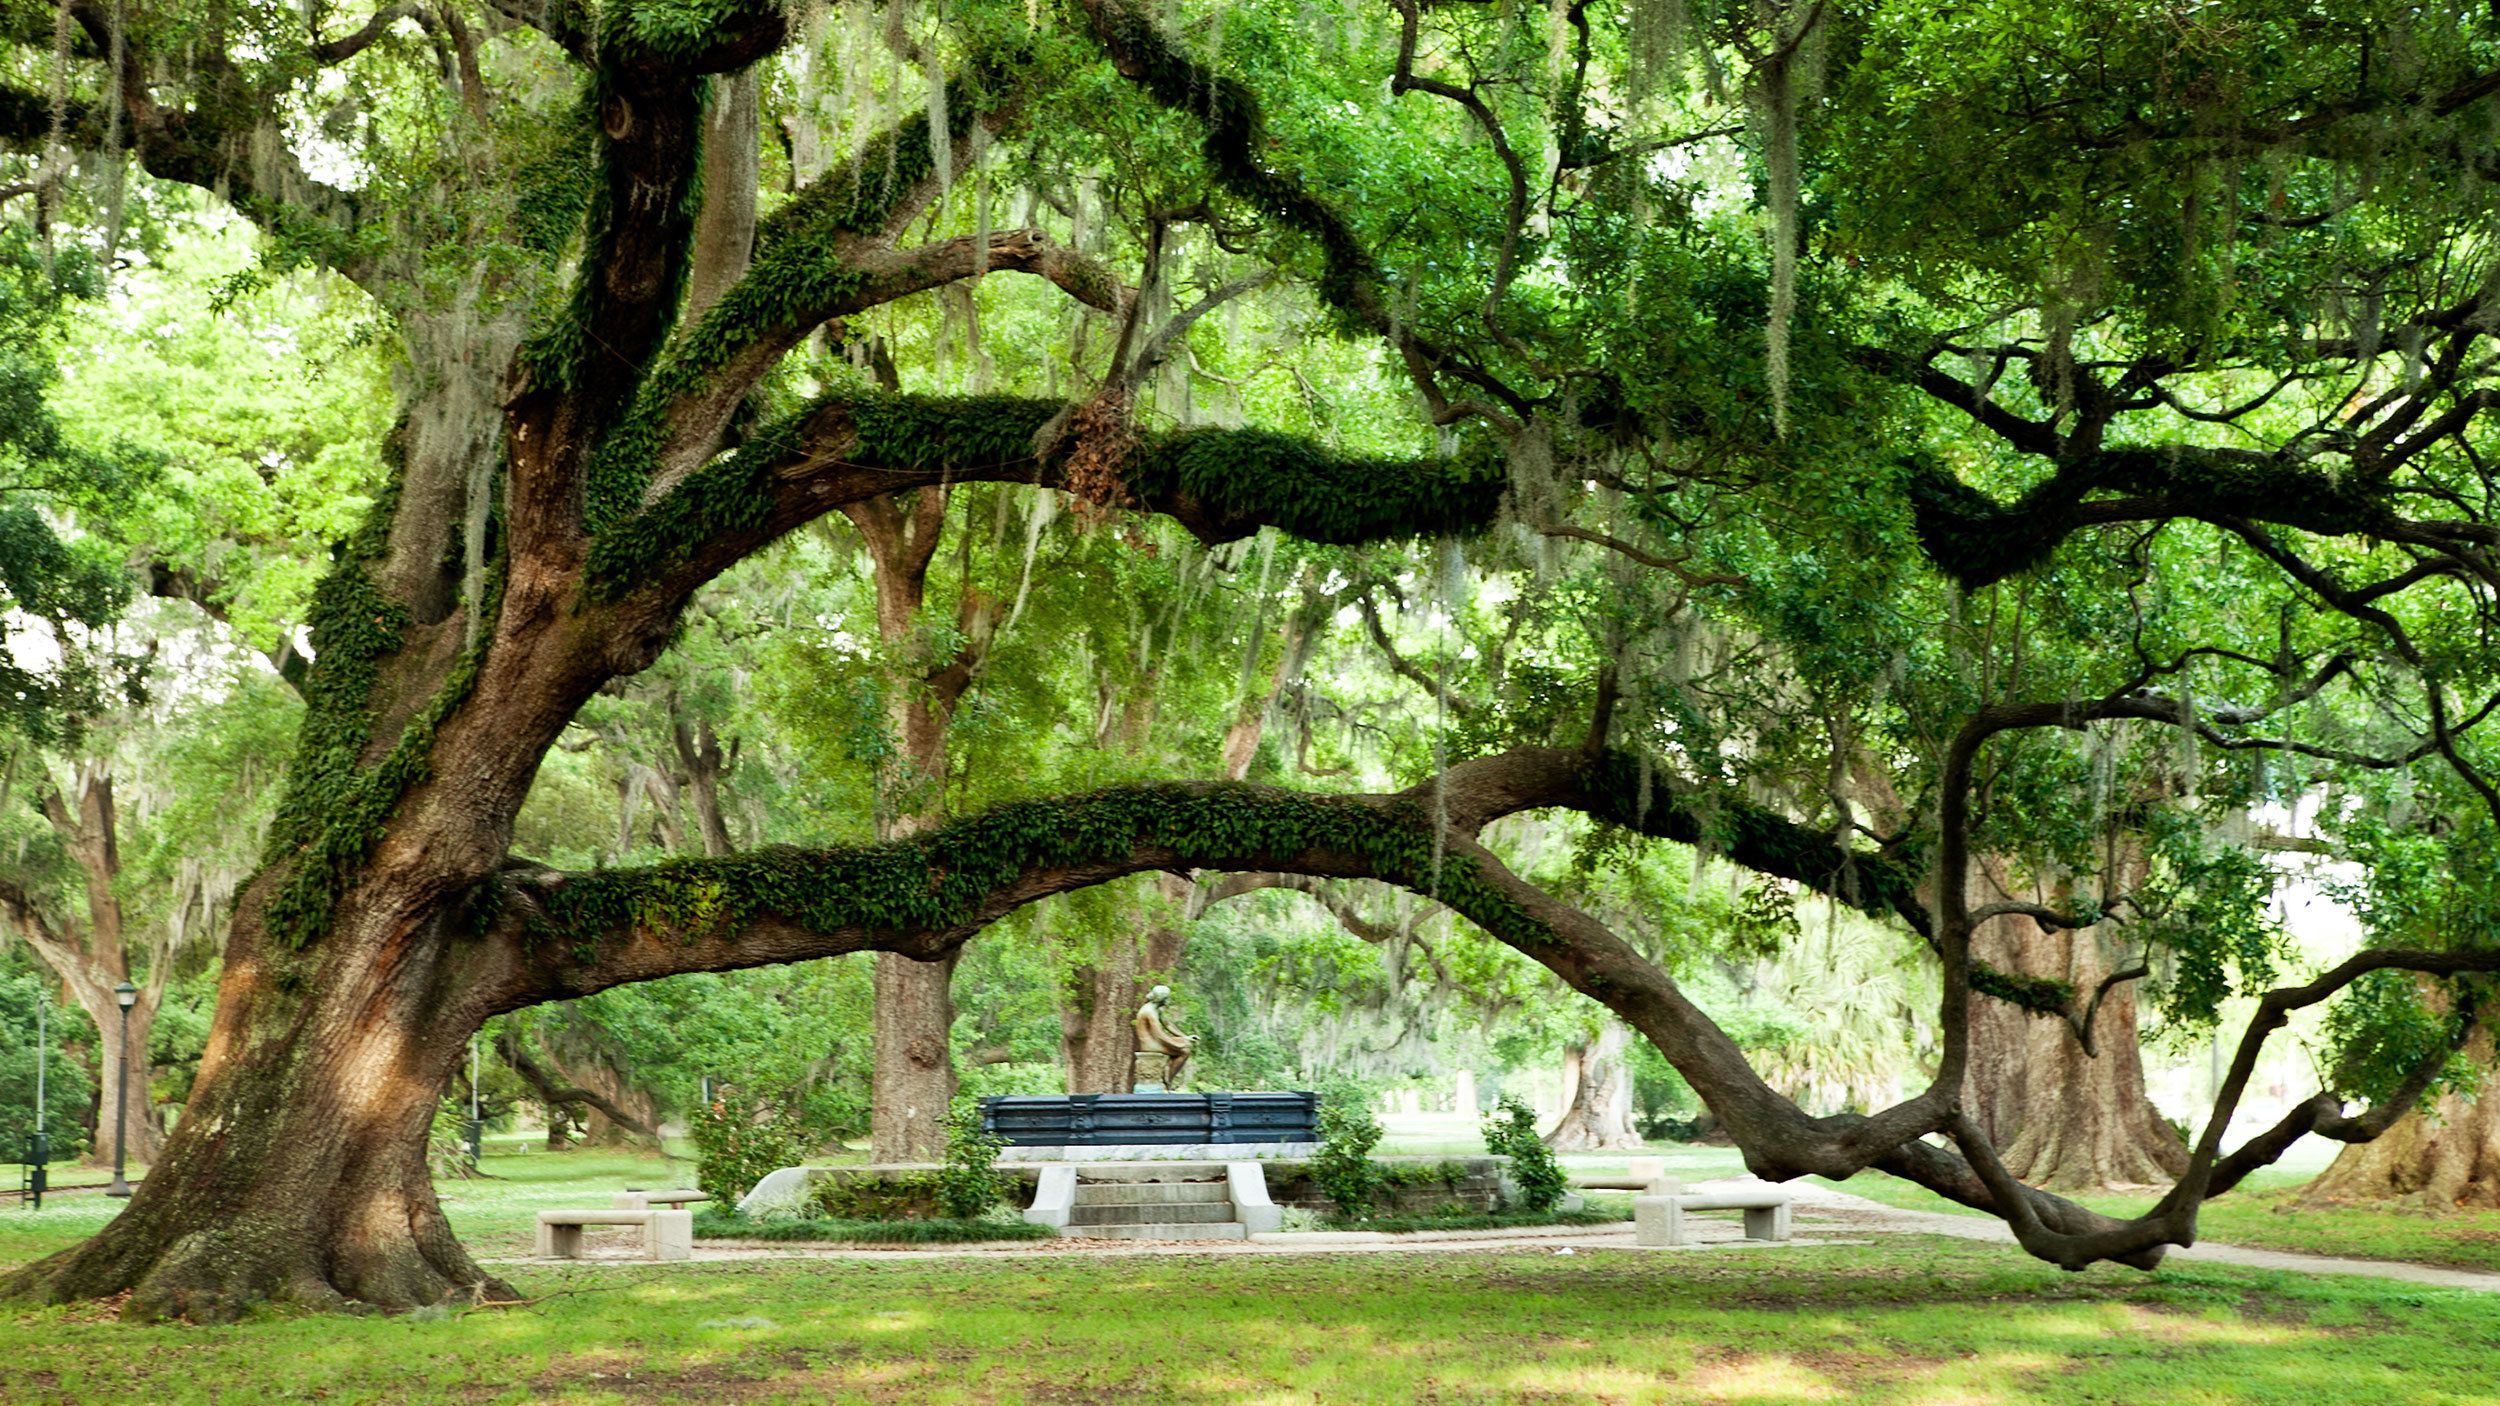 large tree with huge branches at park in New Orleans